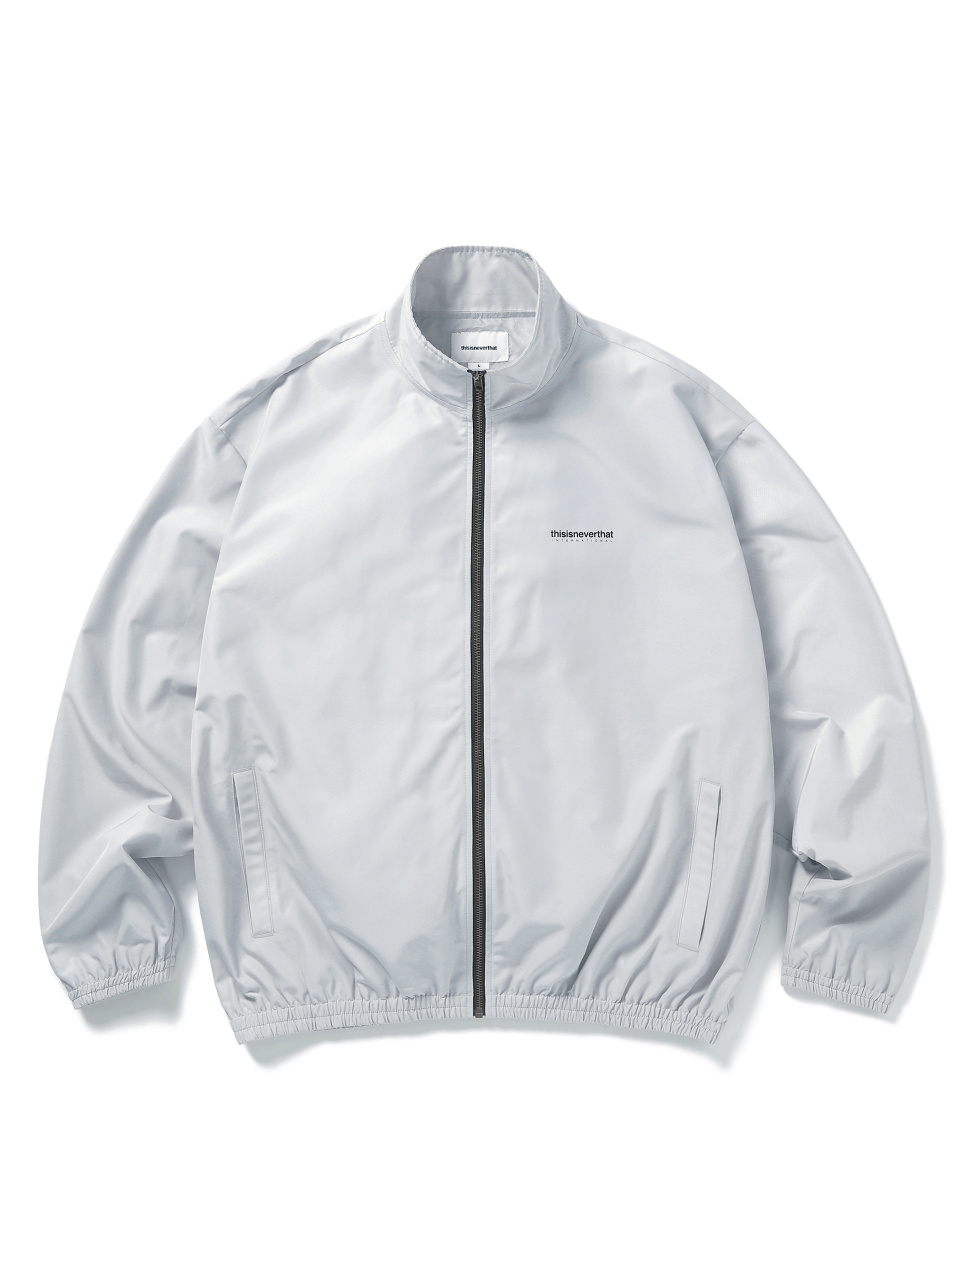 디스이즈네버댓(THISISNEVERTHAT) INTL. Team Jacket Light Grey